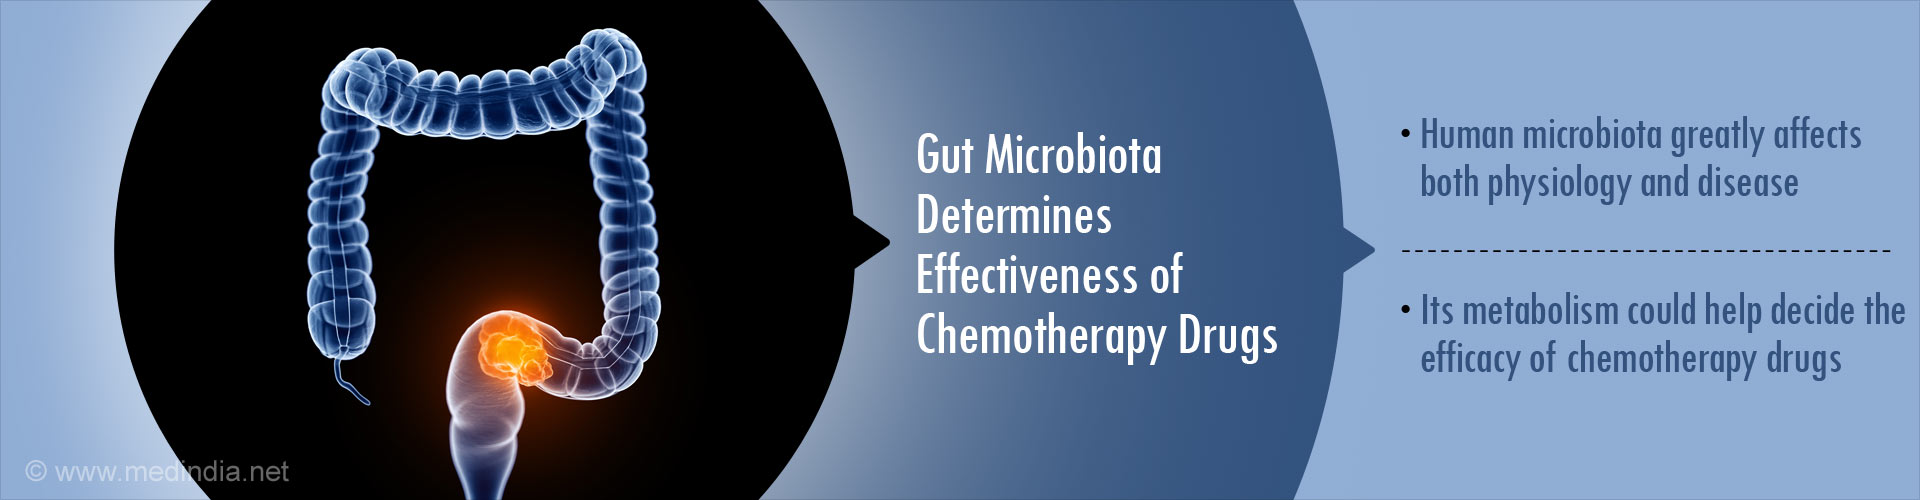 Gut microbiota determines effectiveness of chemotherapy drugs